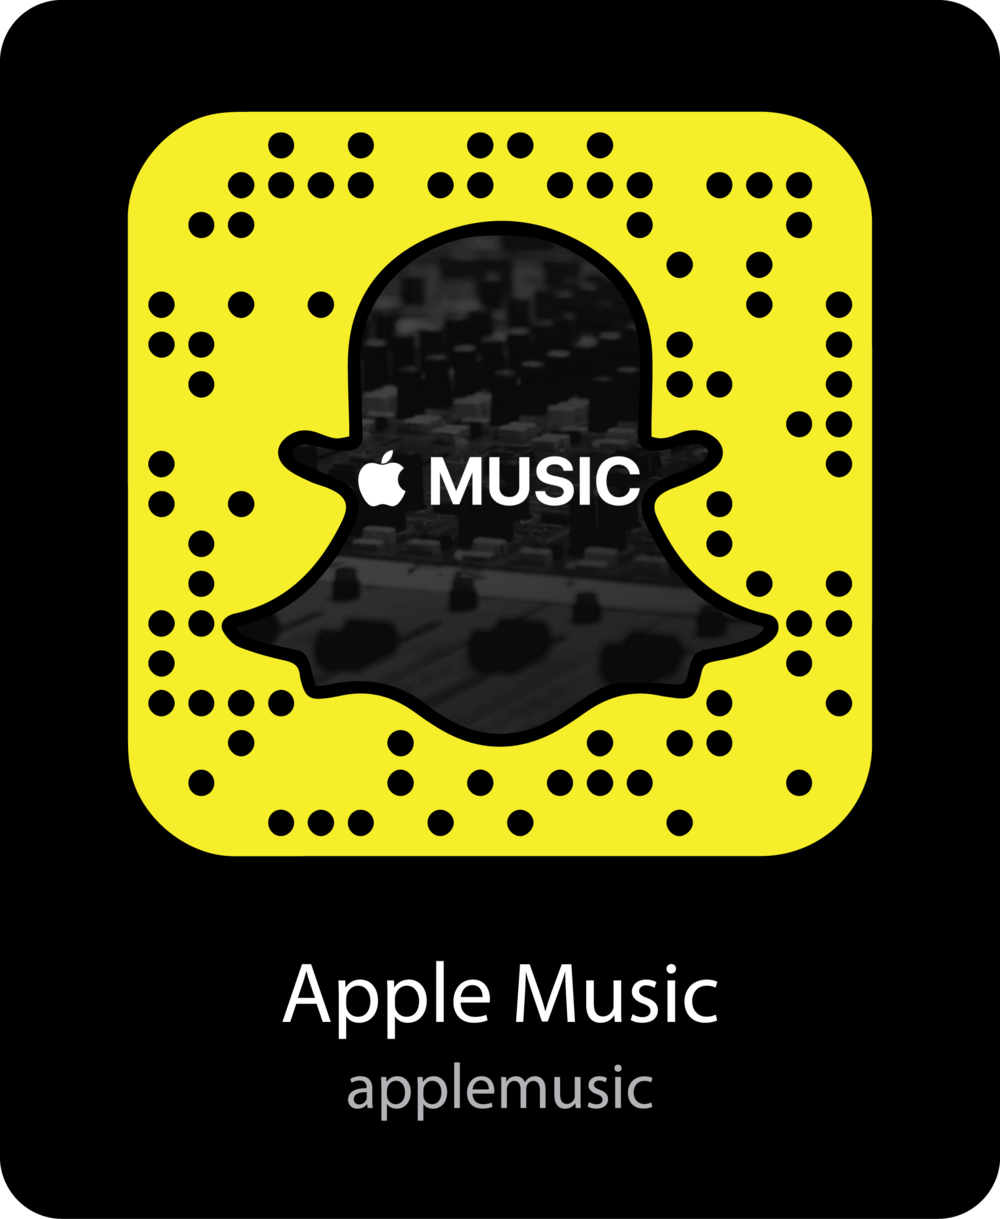 applemusic-Brands-snapchat-snapcode.png